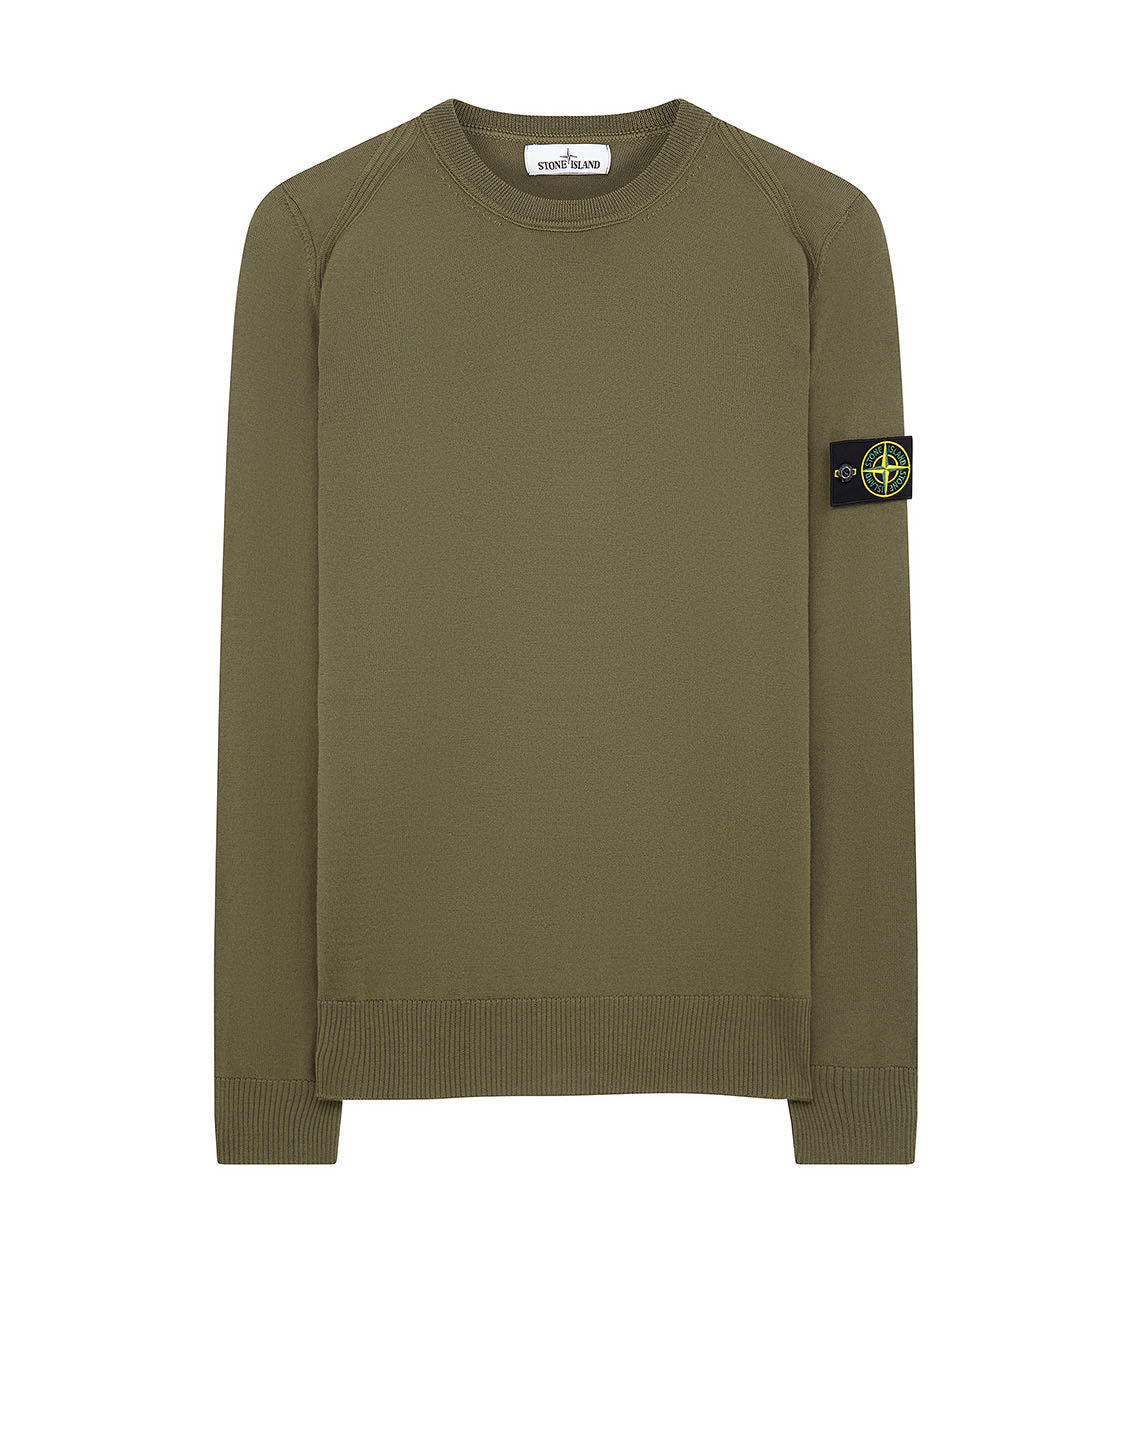 524C4 Crewneck Wool Knit in Olive